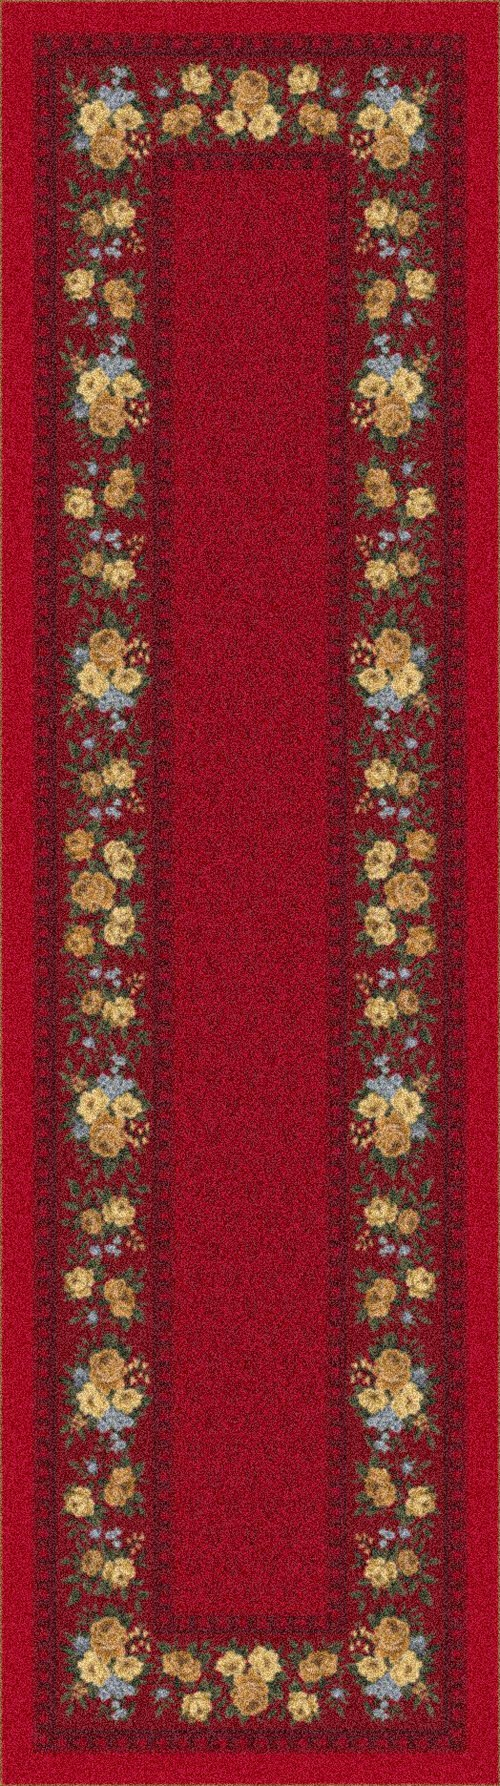 Currant Red (224)  Floral / Botanical Area Rug